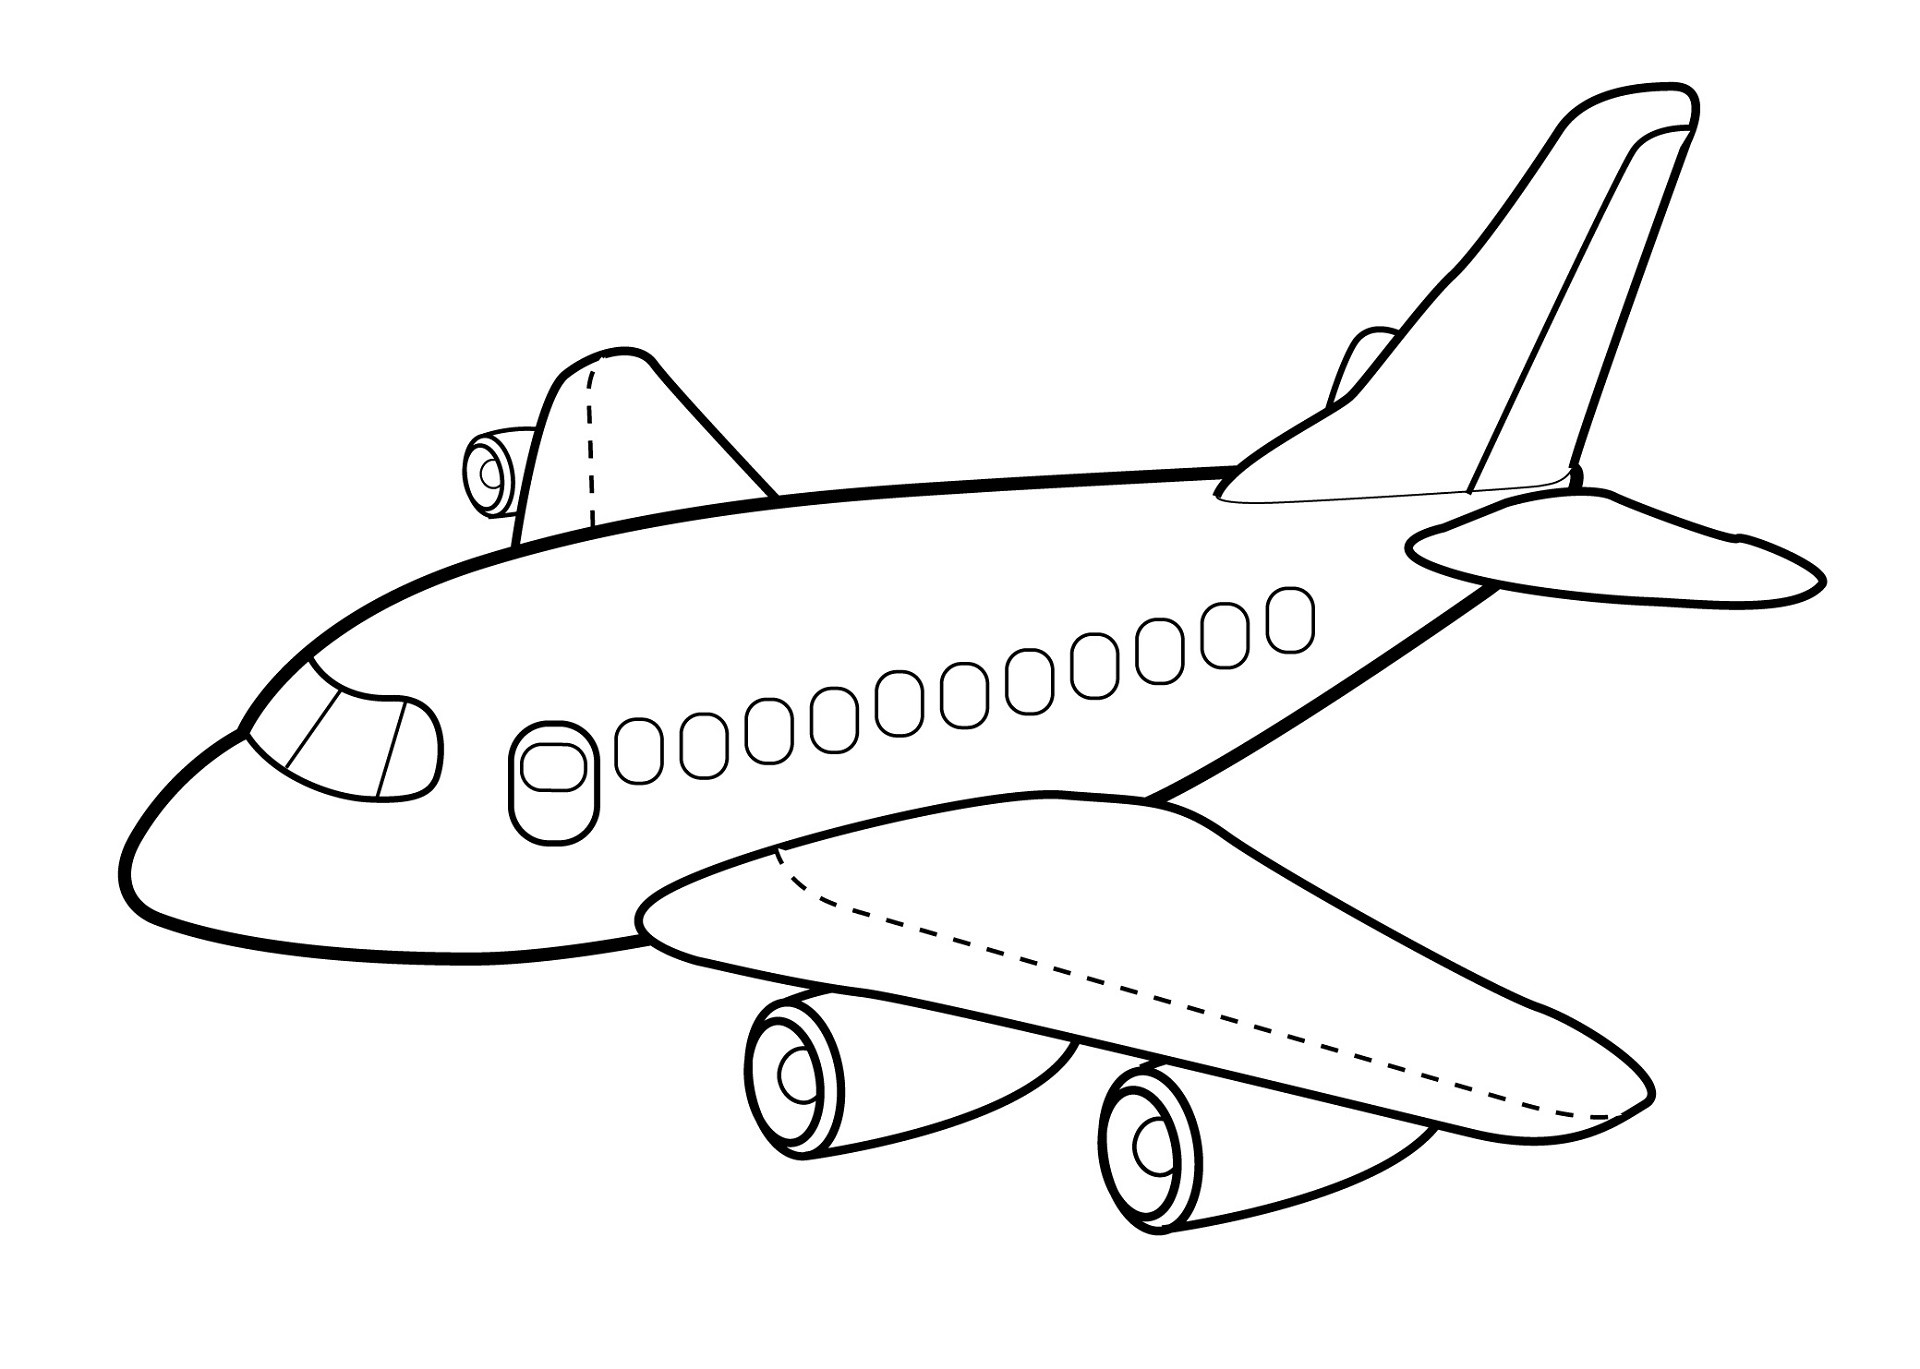 Best ideas about Planes Coloring Pages For Kids . Save or Pin Dibujos de Aviones para colorear e imprimir gratis Now.